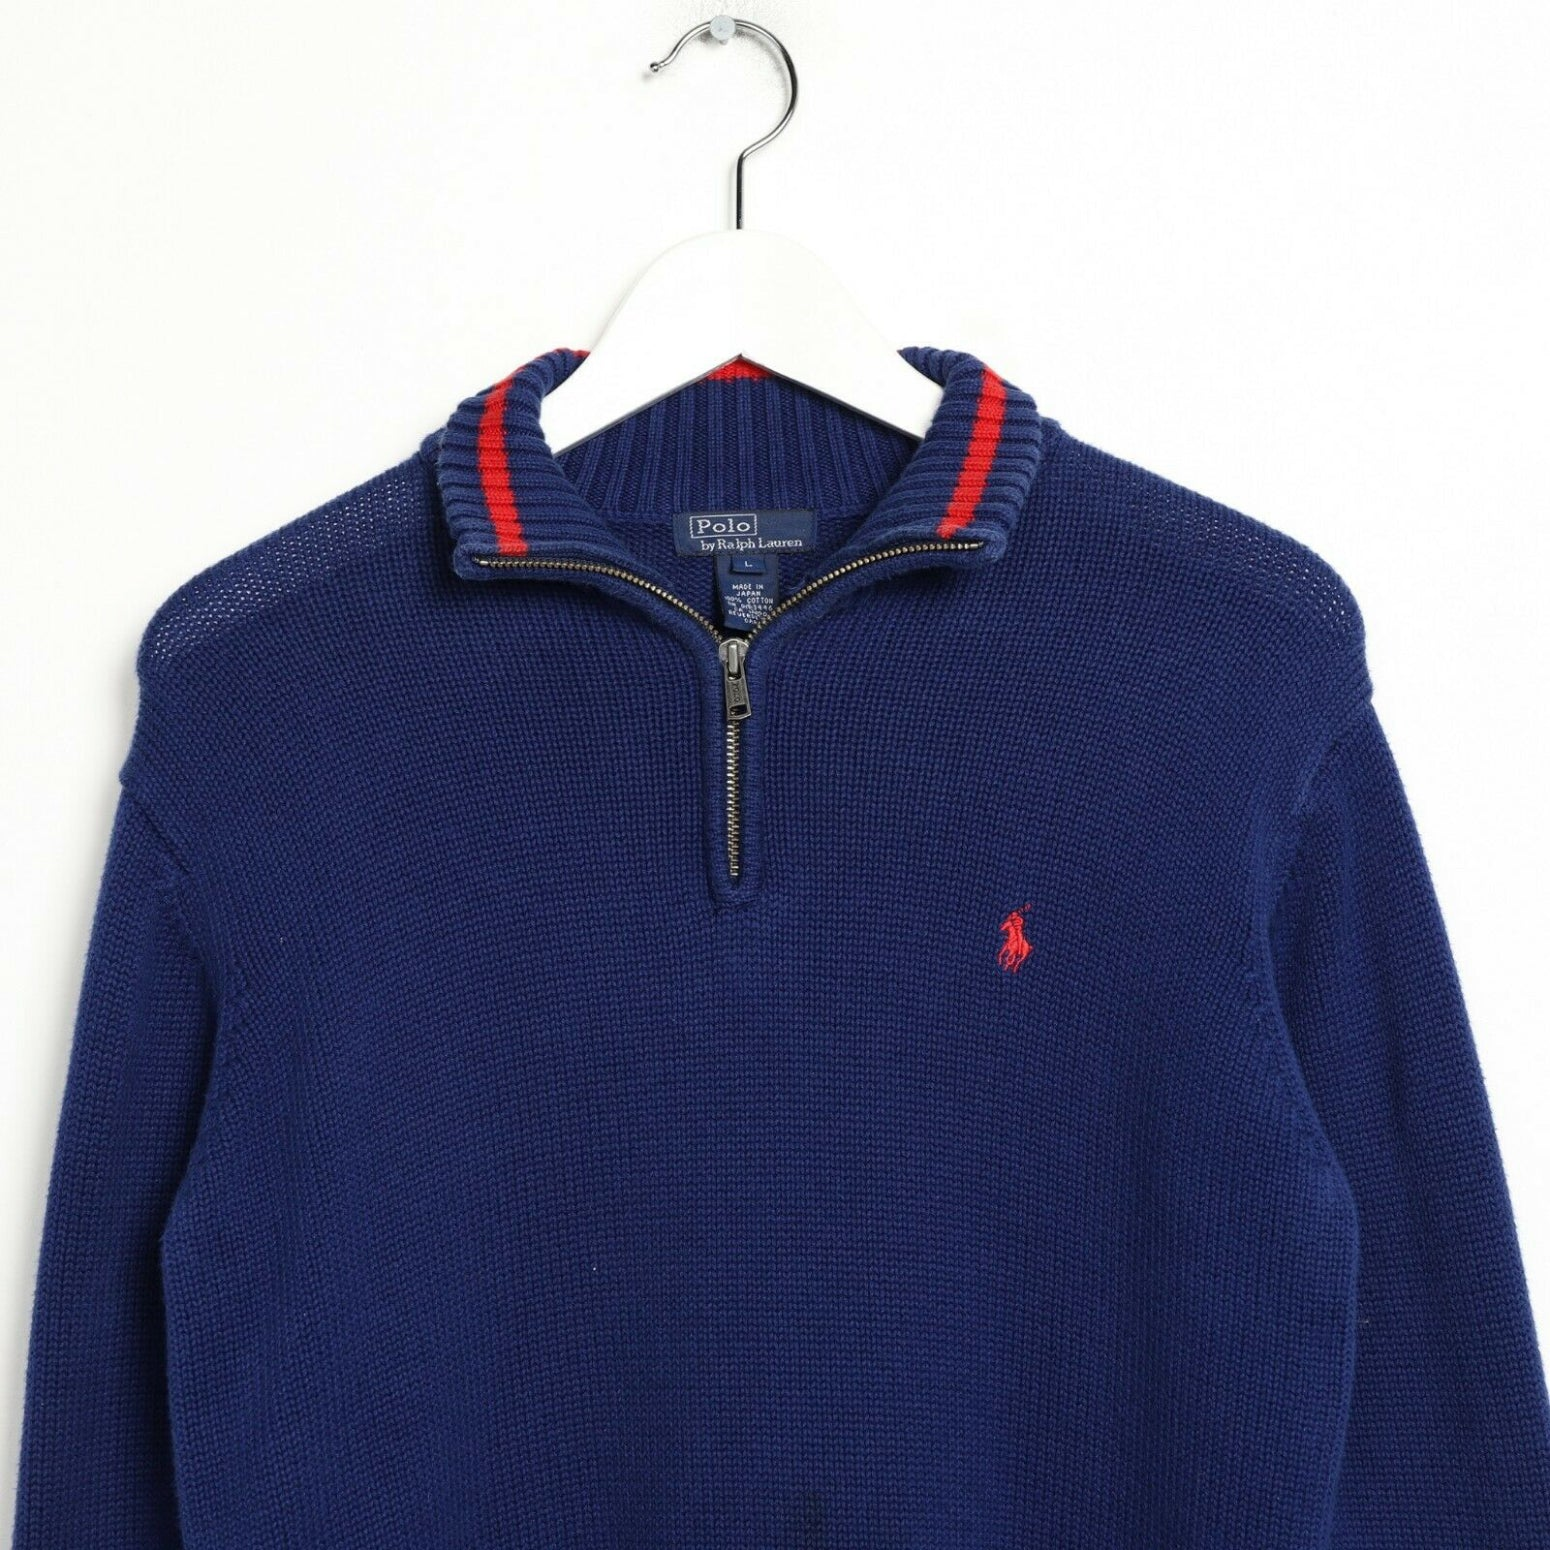 Vintage RALPH LAUREN Small Logo 1/4 Zip Sweatshirt Jumper Blue small S